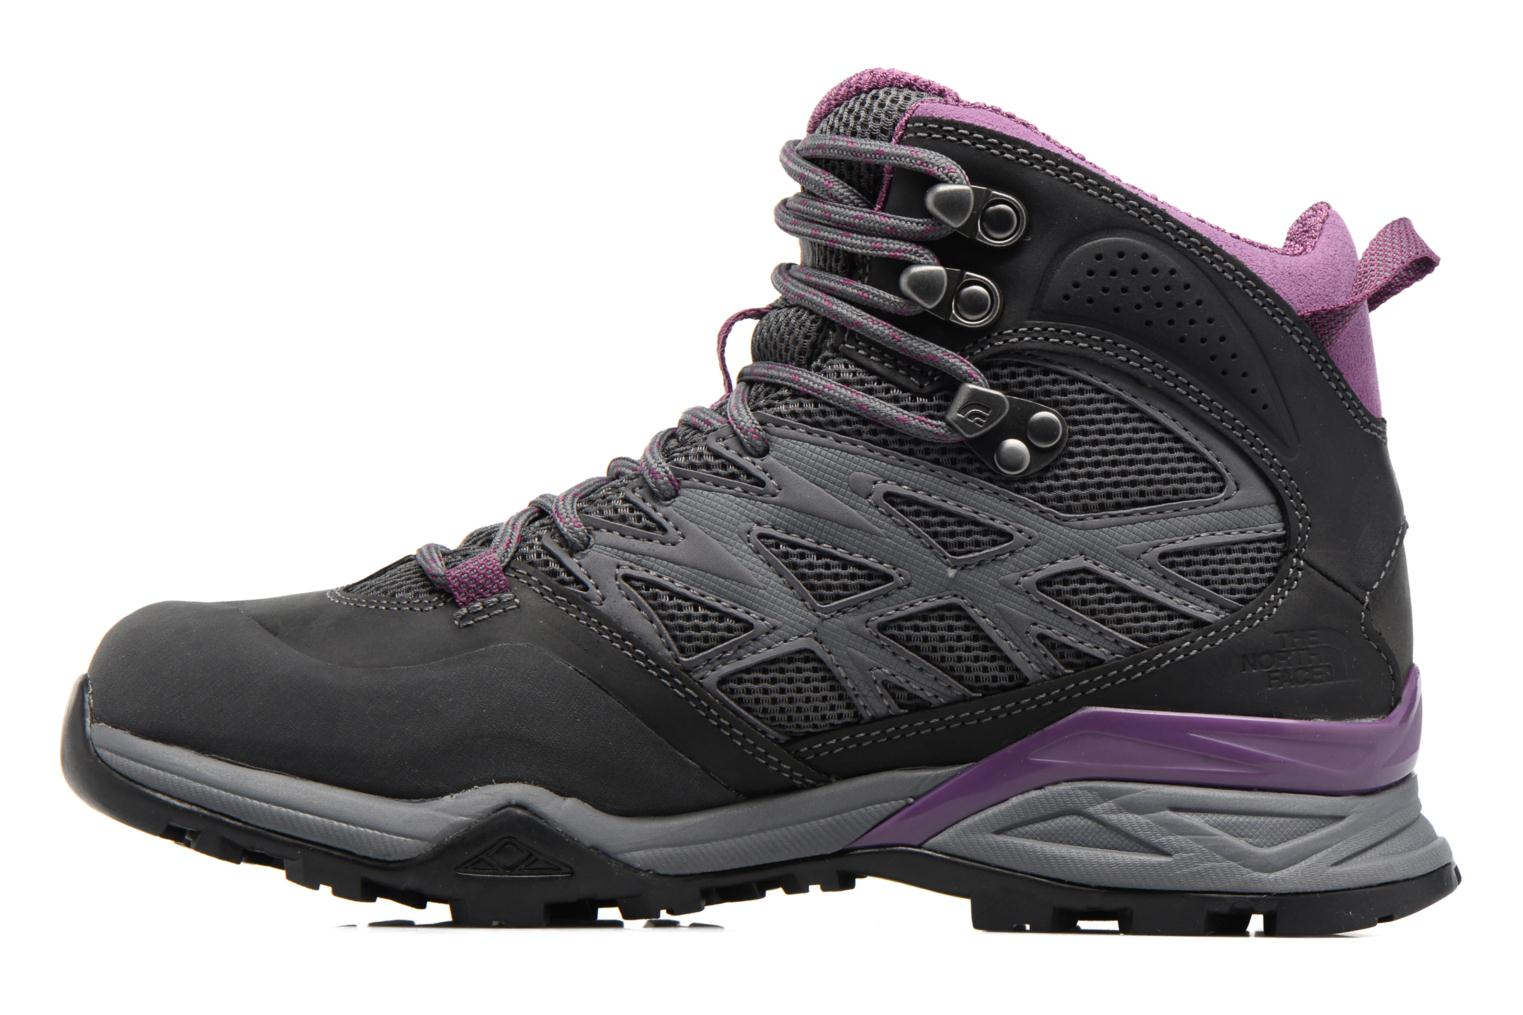 Hedgehog Hike Mid GTX W Dark Shadow Grey/WDVIOLT